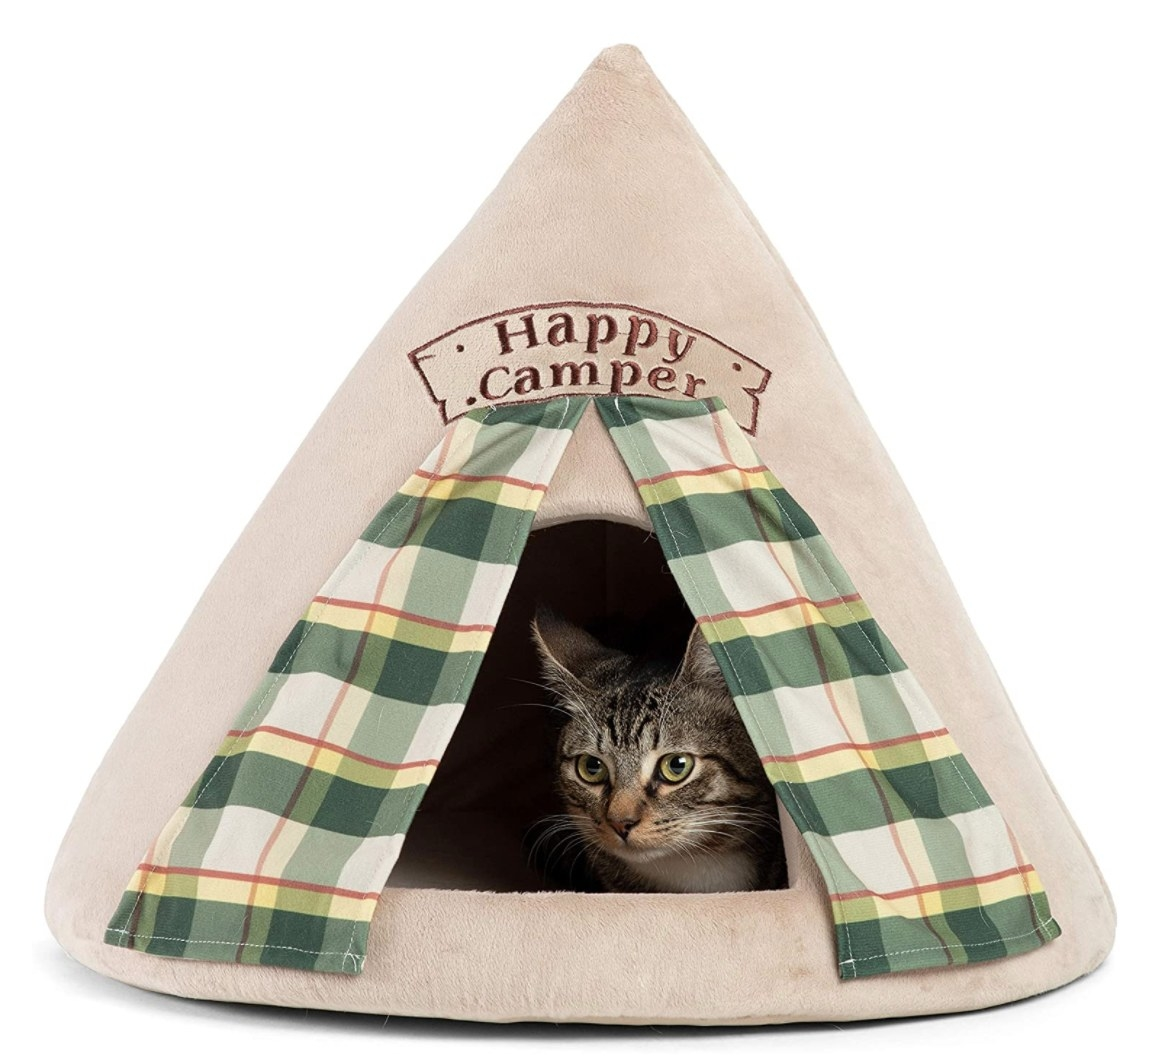 A cut sitting inside a triangular tent with plaid drapes